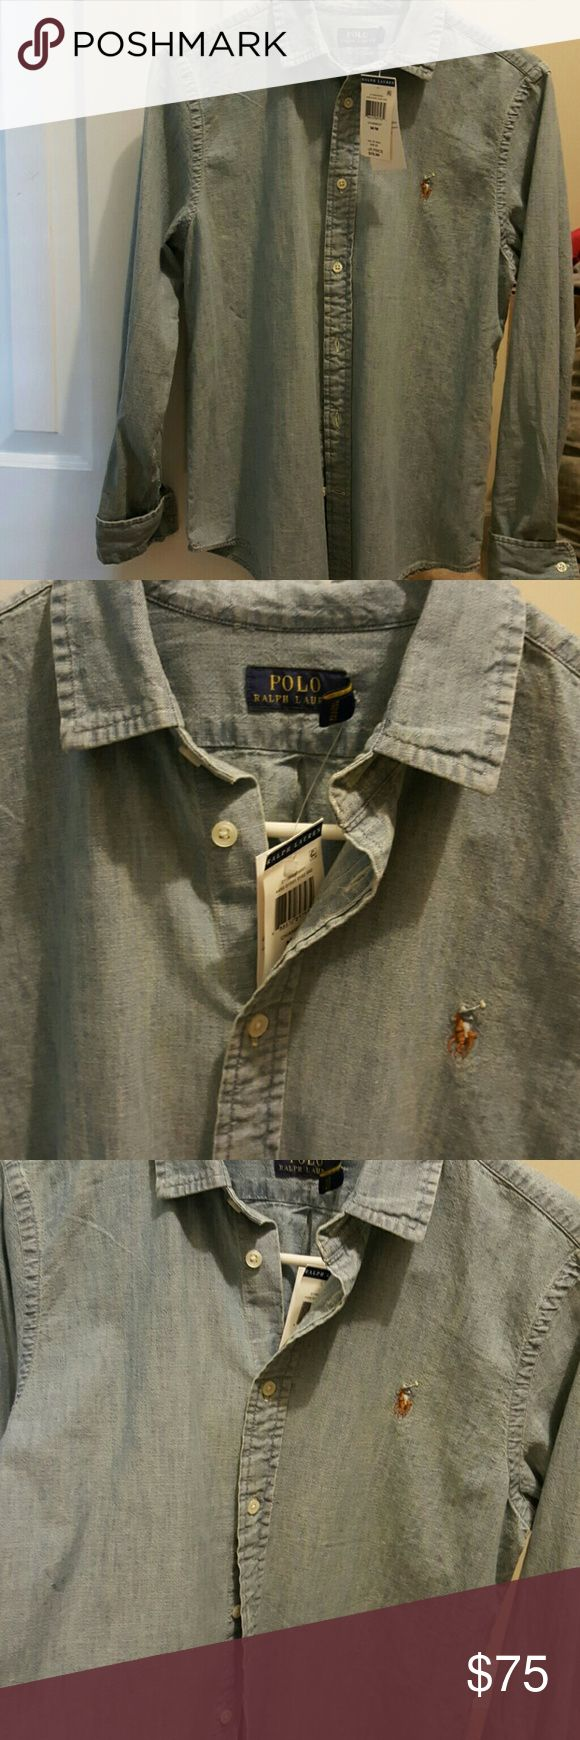 NWT POLO RALPH LAUREN CHAMBRAY BUTTON DOWN Brand new with tags,  in perfect condition,  never worn. Chambray button down. Denim colored, classic with brown white and blue horse and man. Very comfortable and goes with everything. 100% Cotton and great for Summer. Polo by Ralph Lauren Tops Button Down Shirts